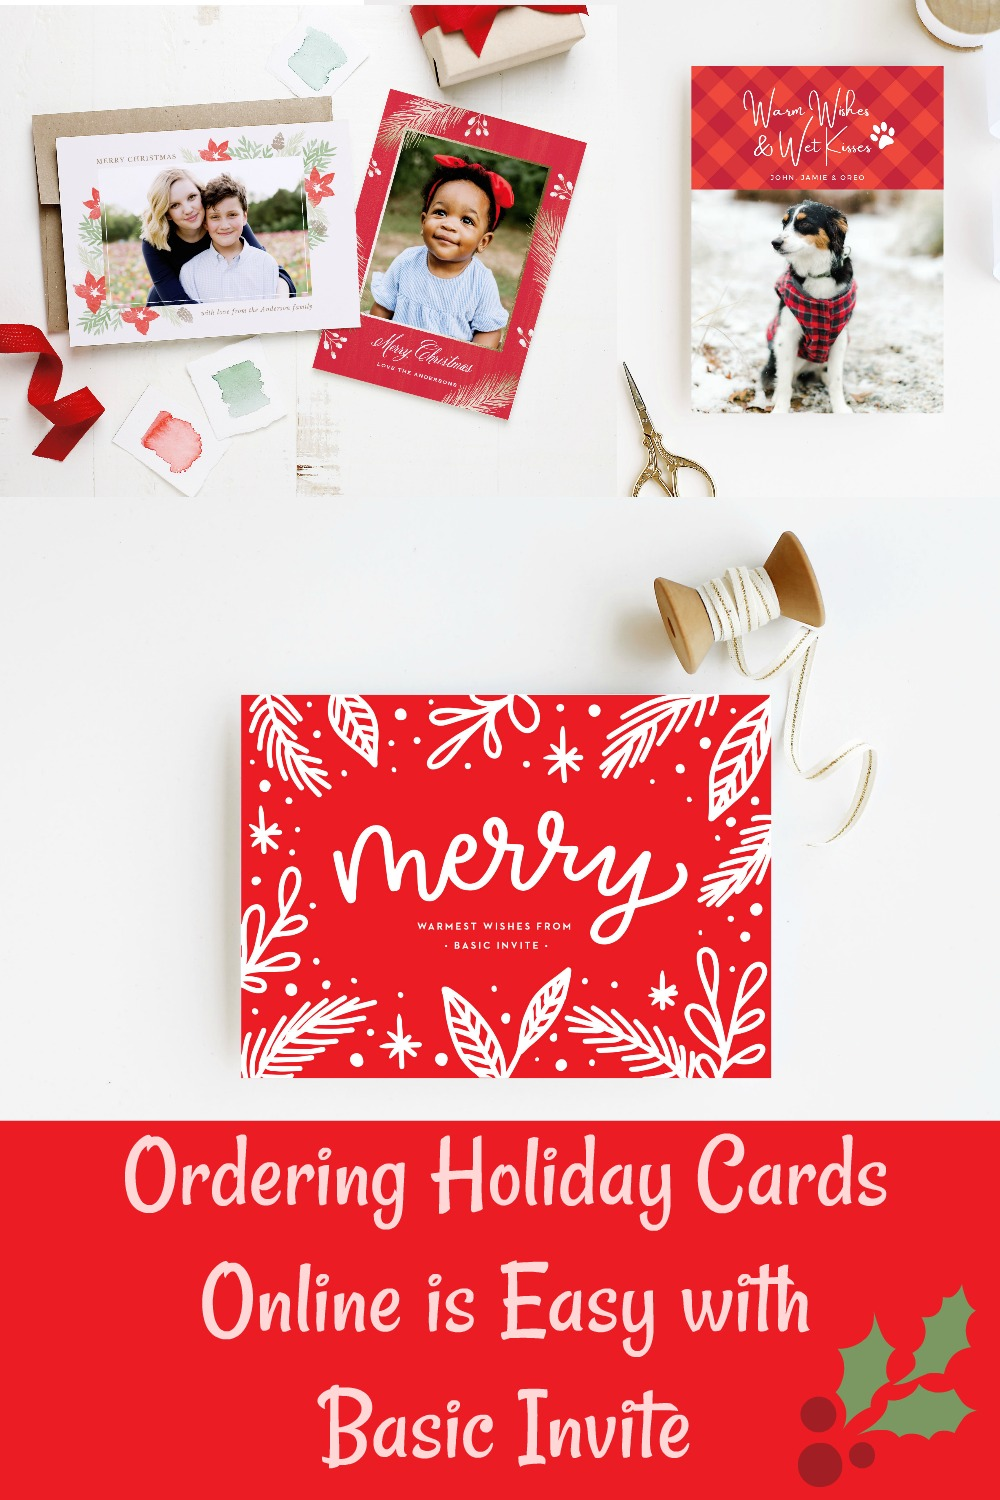 Holiday Cards Online >> Modern Holiday Cards Ordering Online Is Easy With Basic Invite